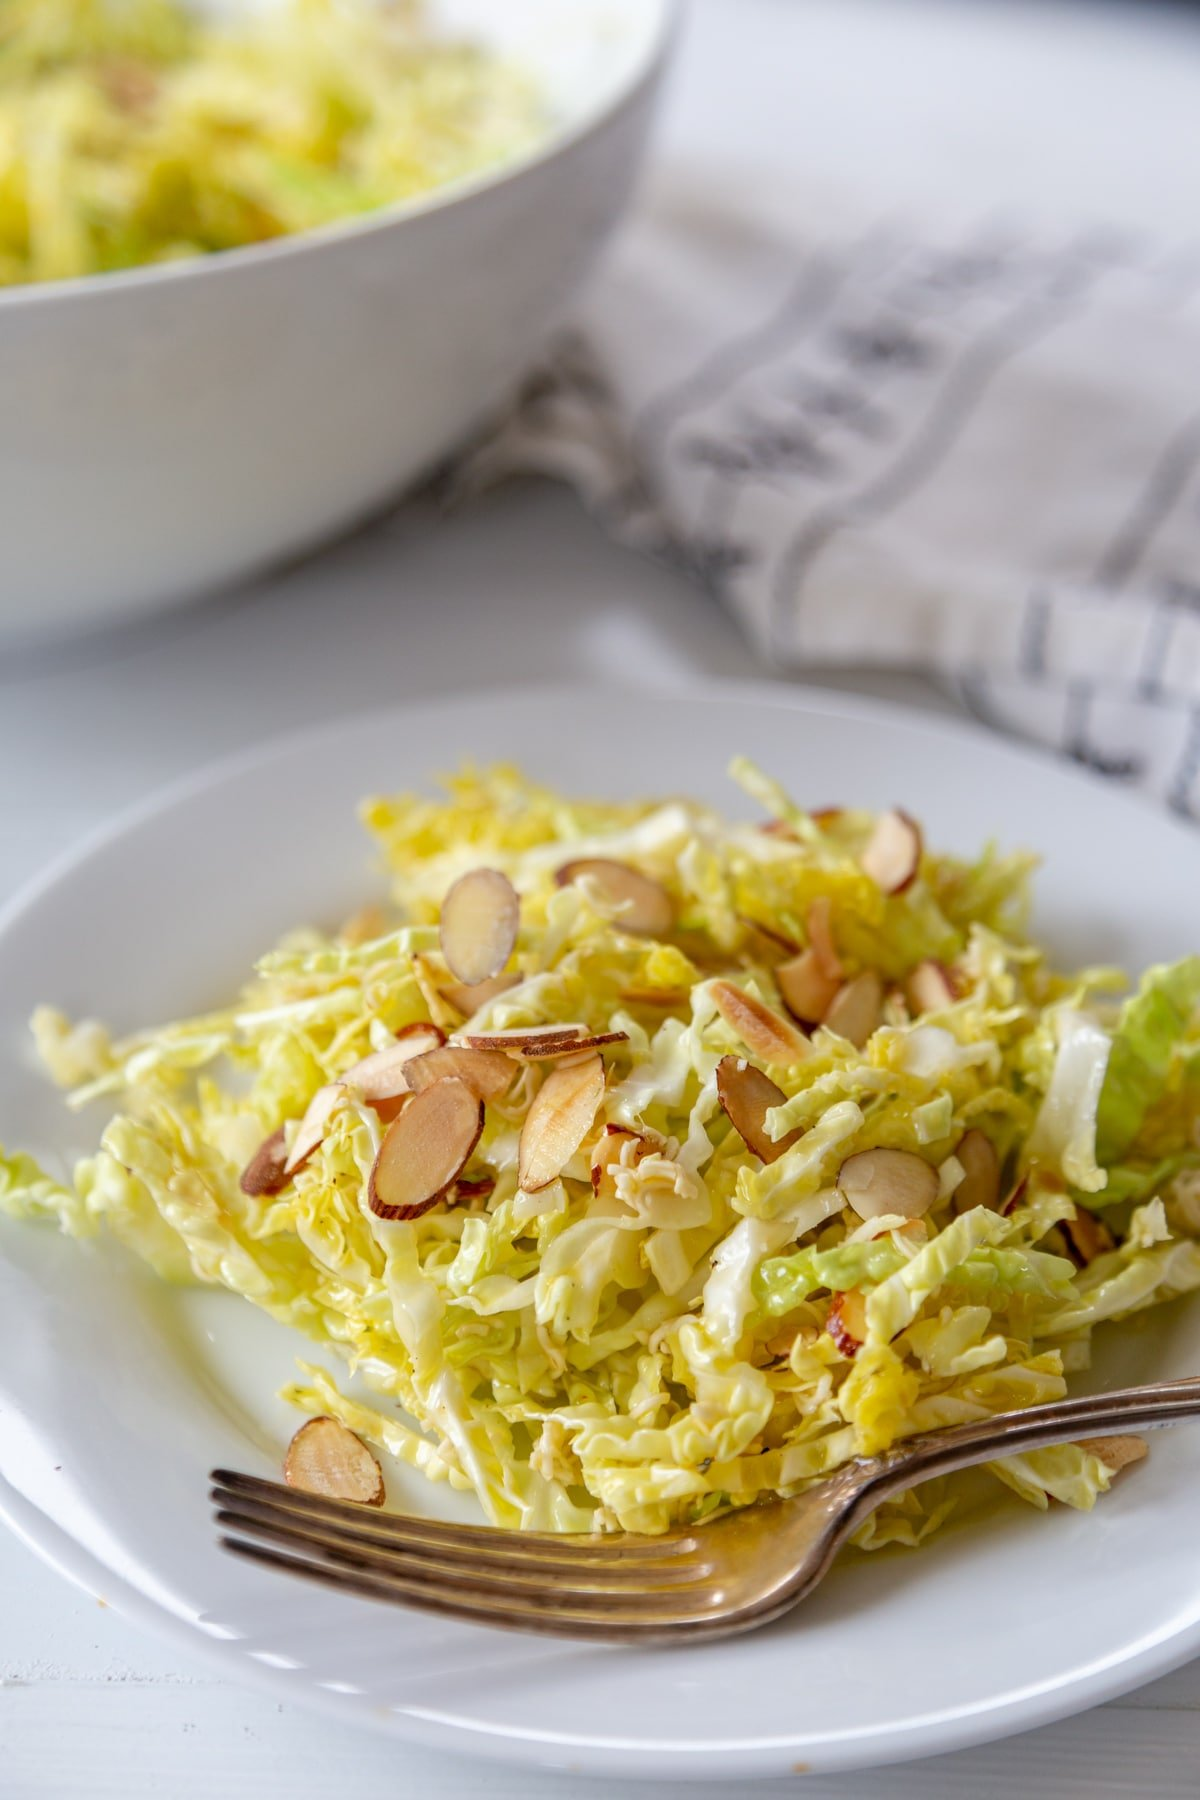 Shredded cabbage salad with slivered almonds on a white plate with a silver fork on the side of the plate and a white bowl of the salad in the background.